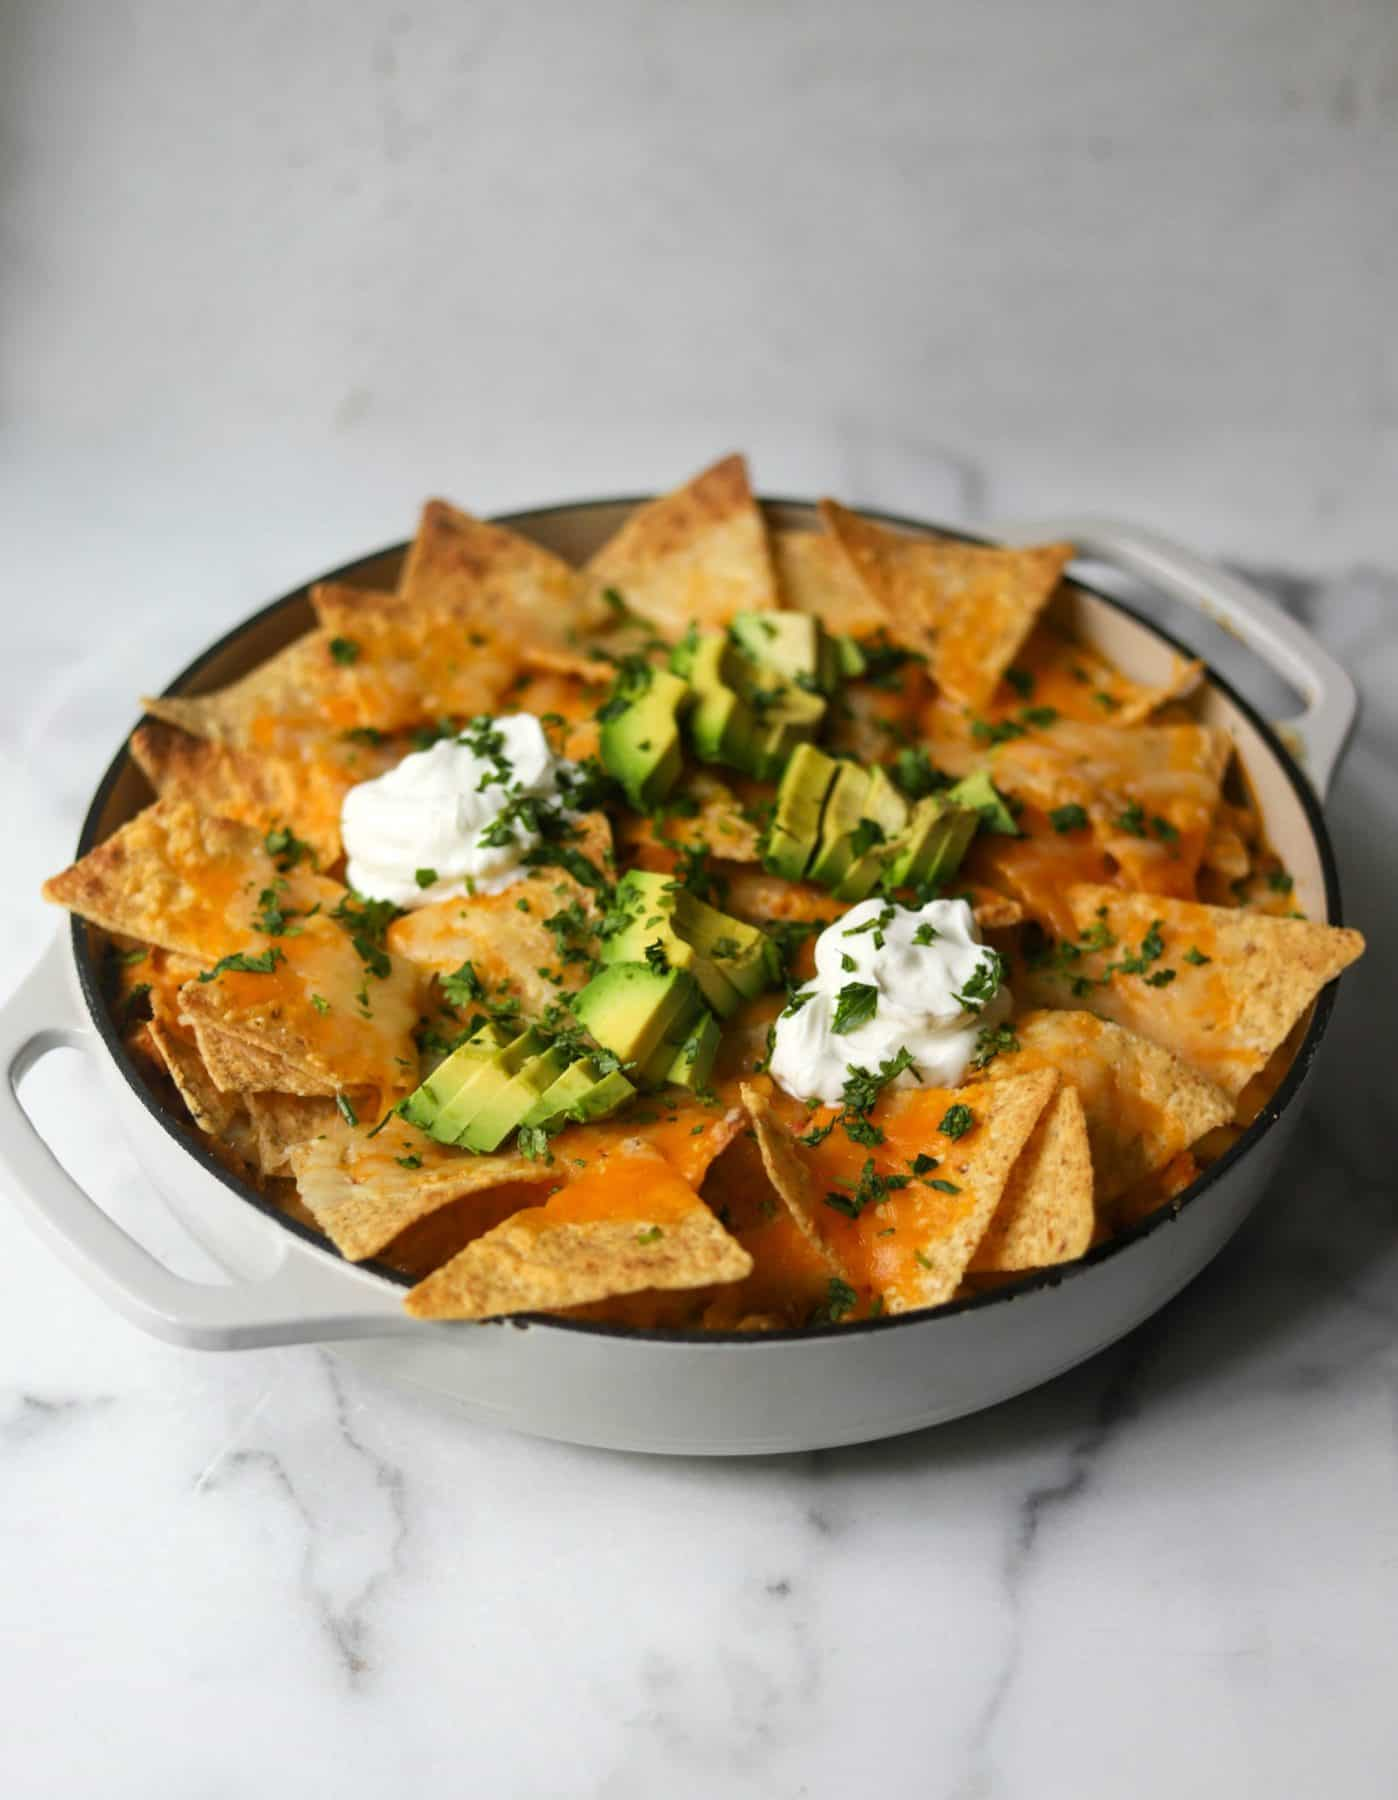 Chicken casserole in a white baking dish topped with tortilla chips, sour cream, avocado, and cheese.